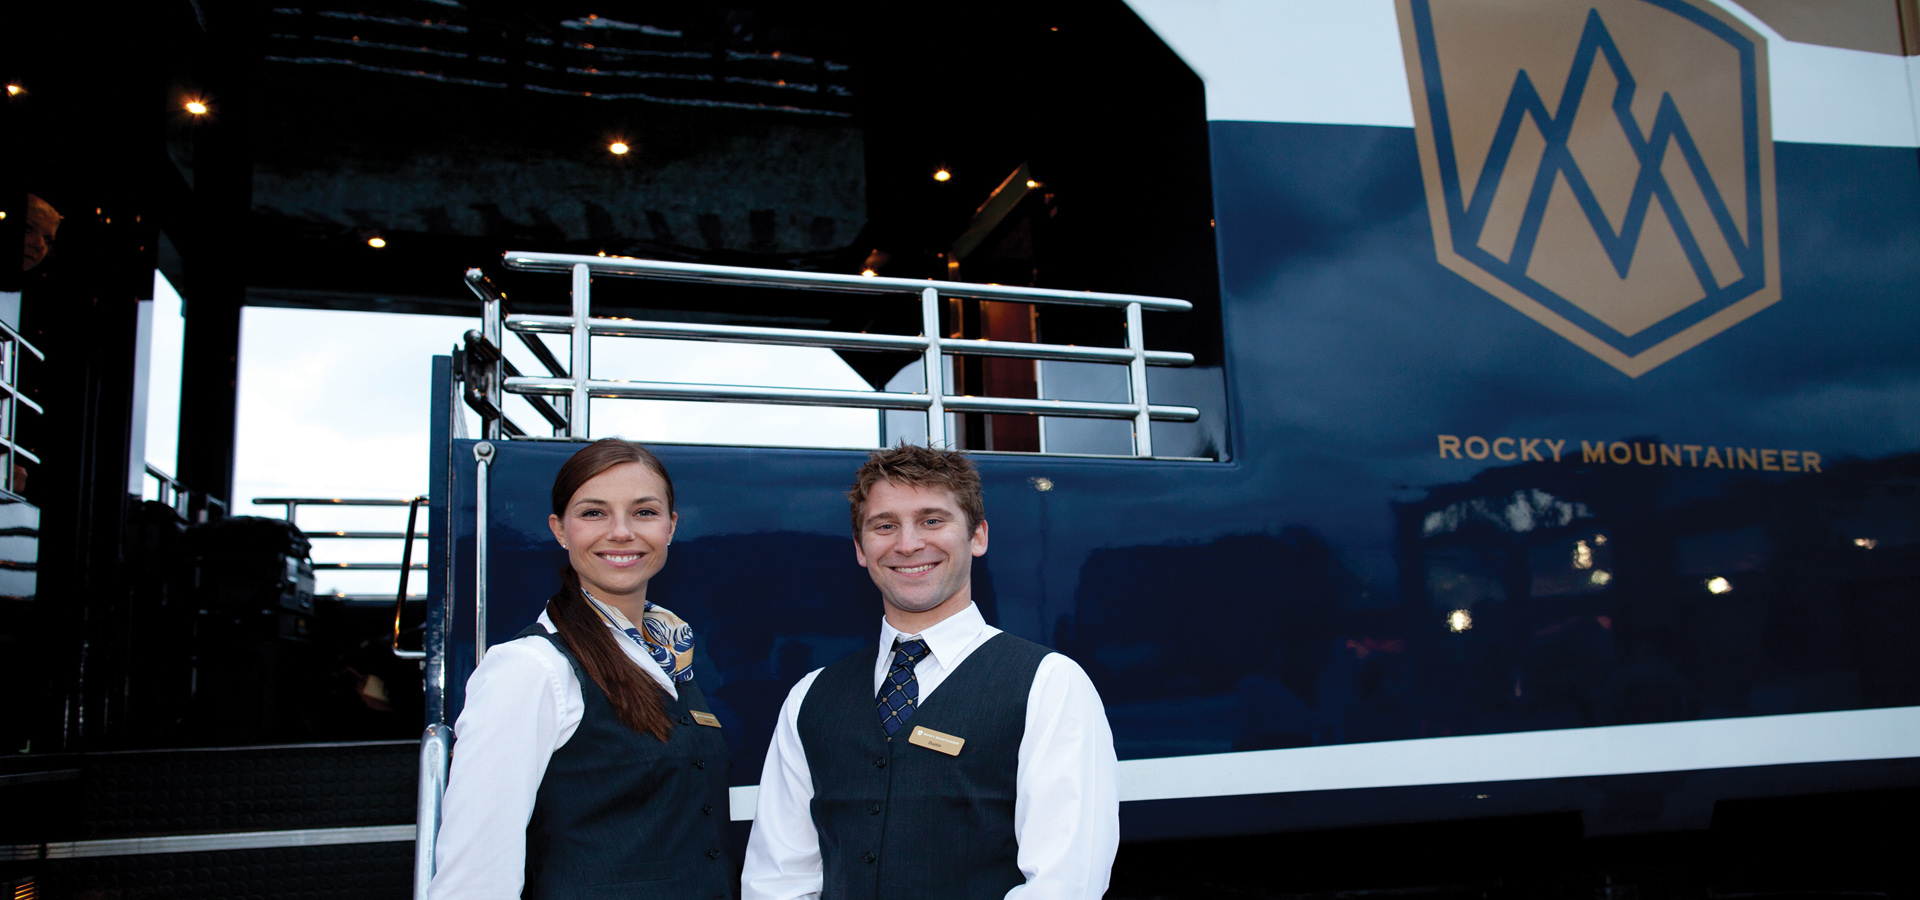 Canadian Rocky Mountaineer Experience